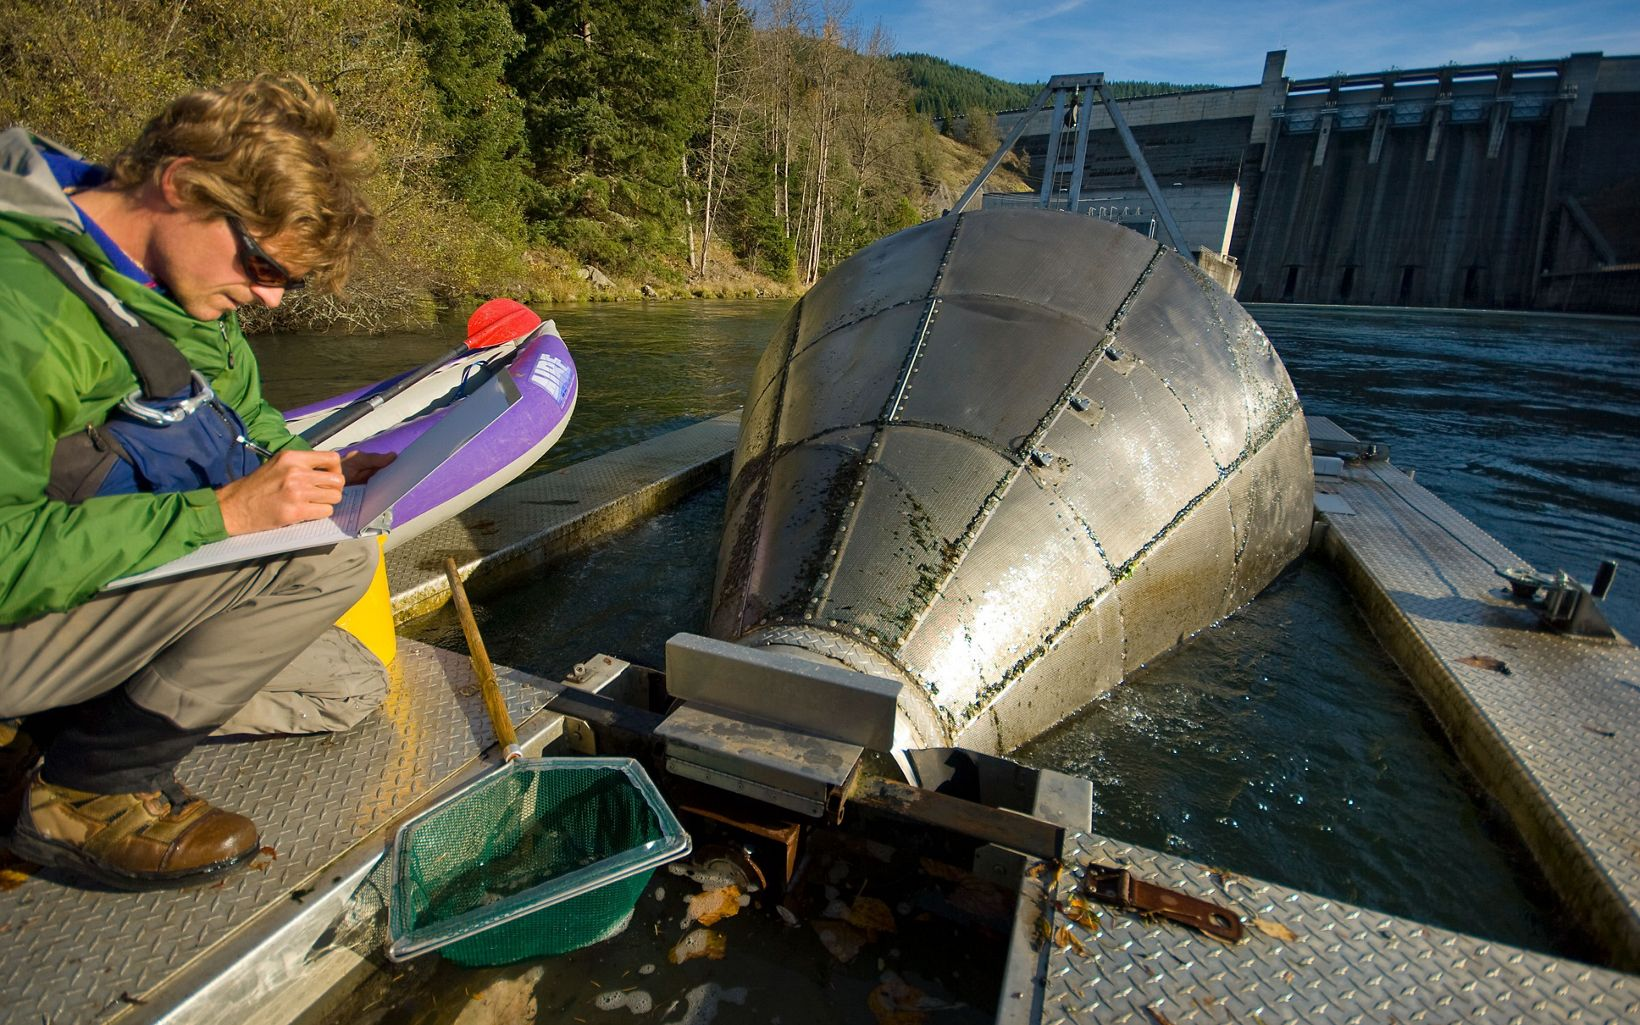 Doug Garletts, a fisheries biologist with the U.S. Army Corps of Engineers, inspects a fish trap below Lookout Point Dam located at Willamette River at Lowell, Oregon .